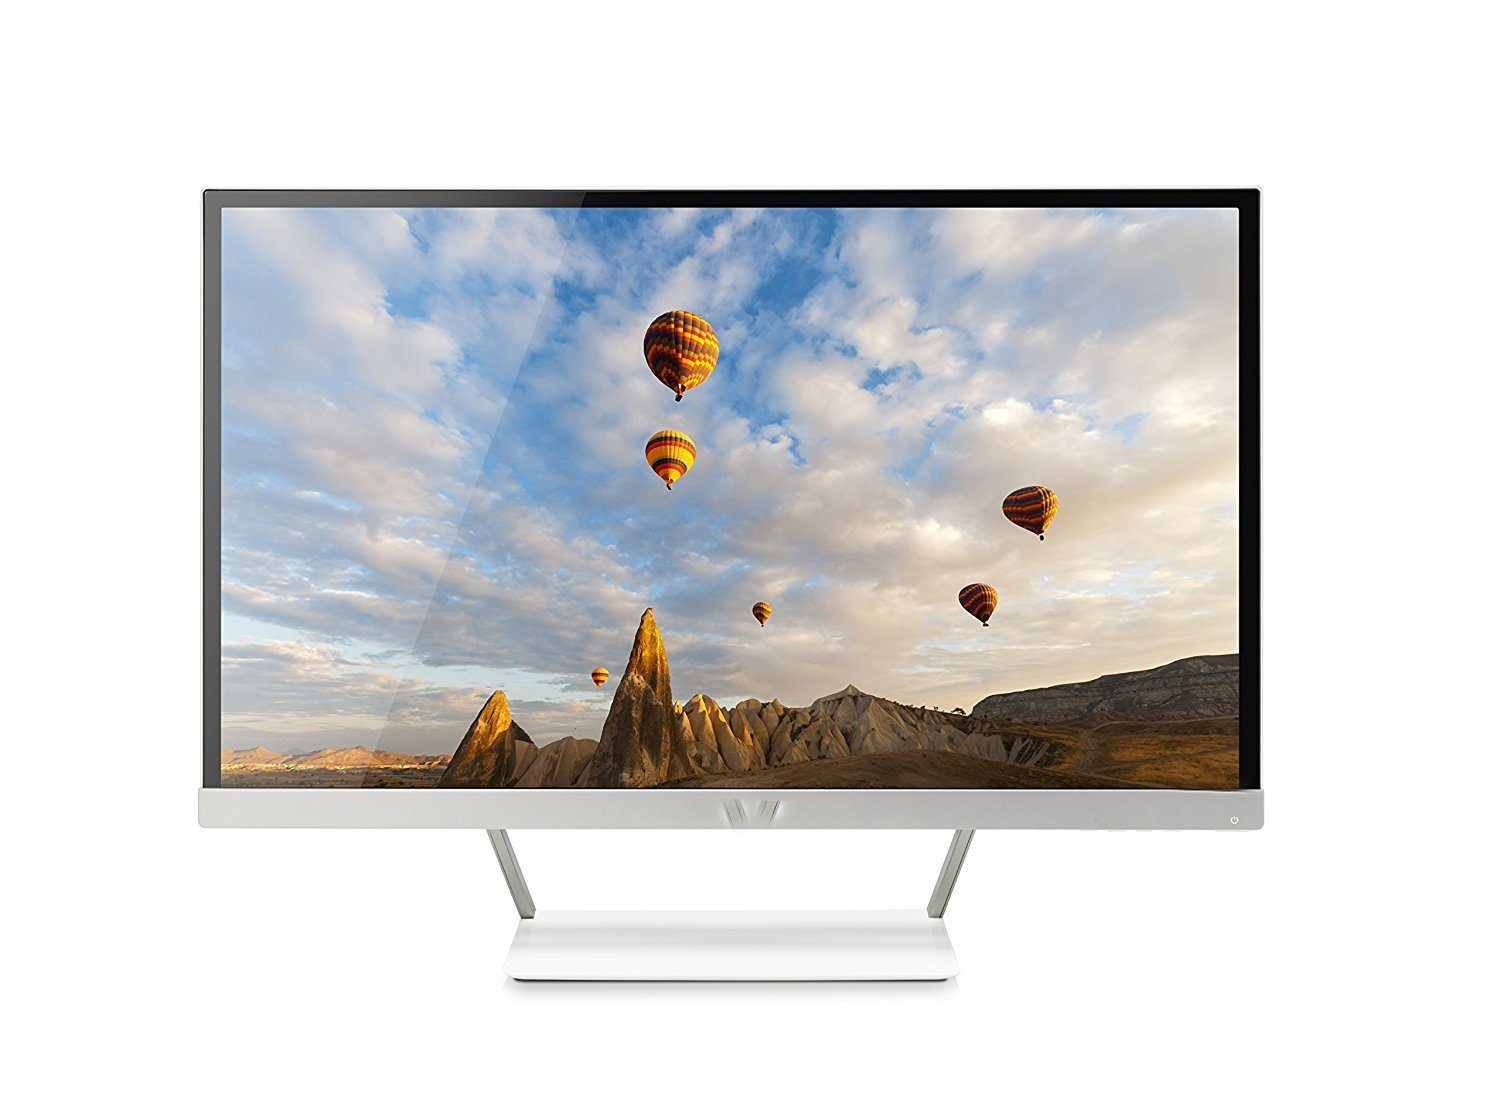 Lightstory 27-inch FHD IPS Monitor with LED Backlight, White and Silver